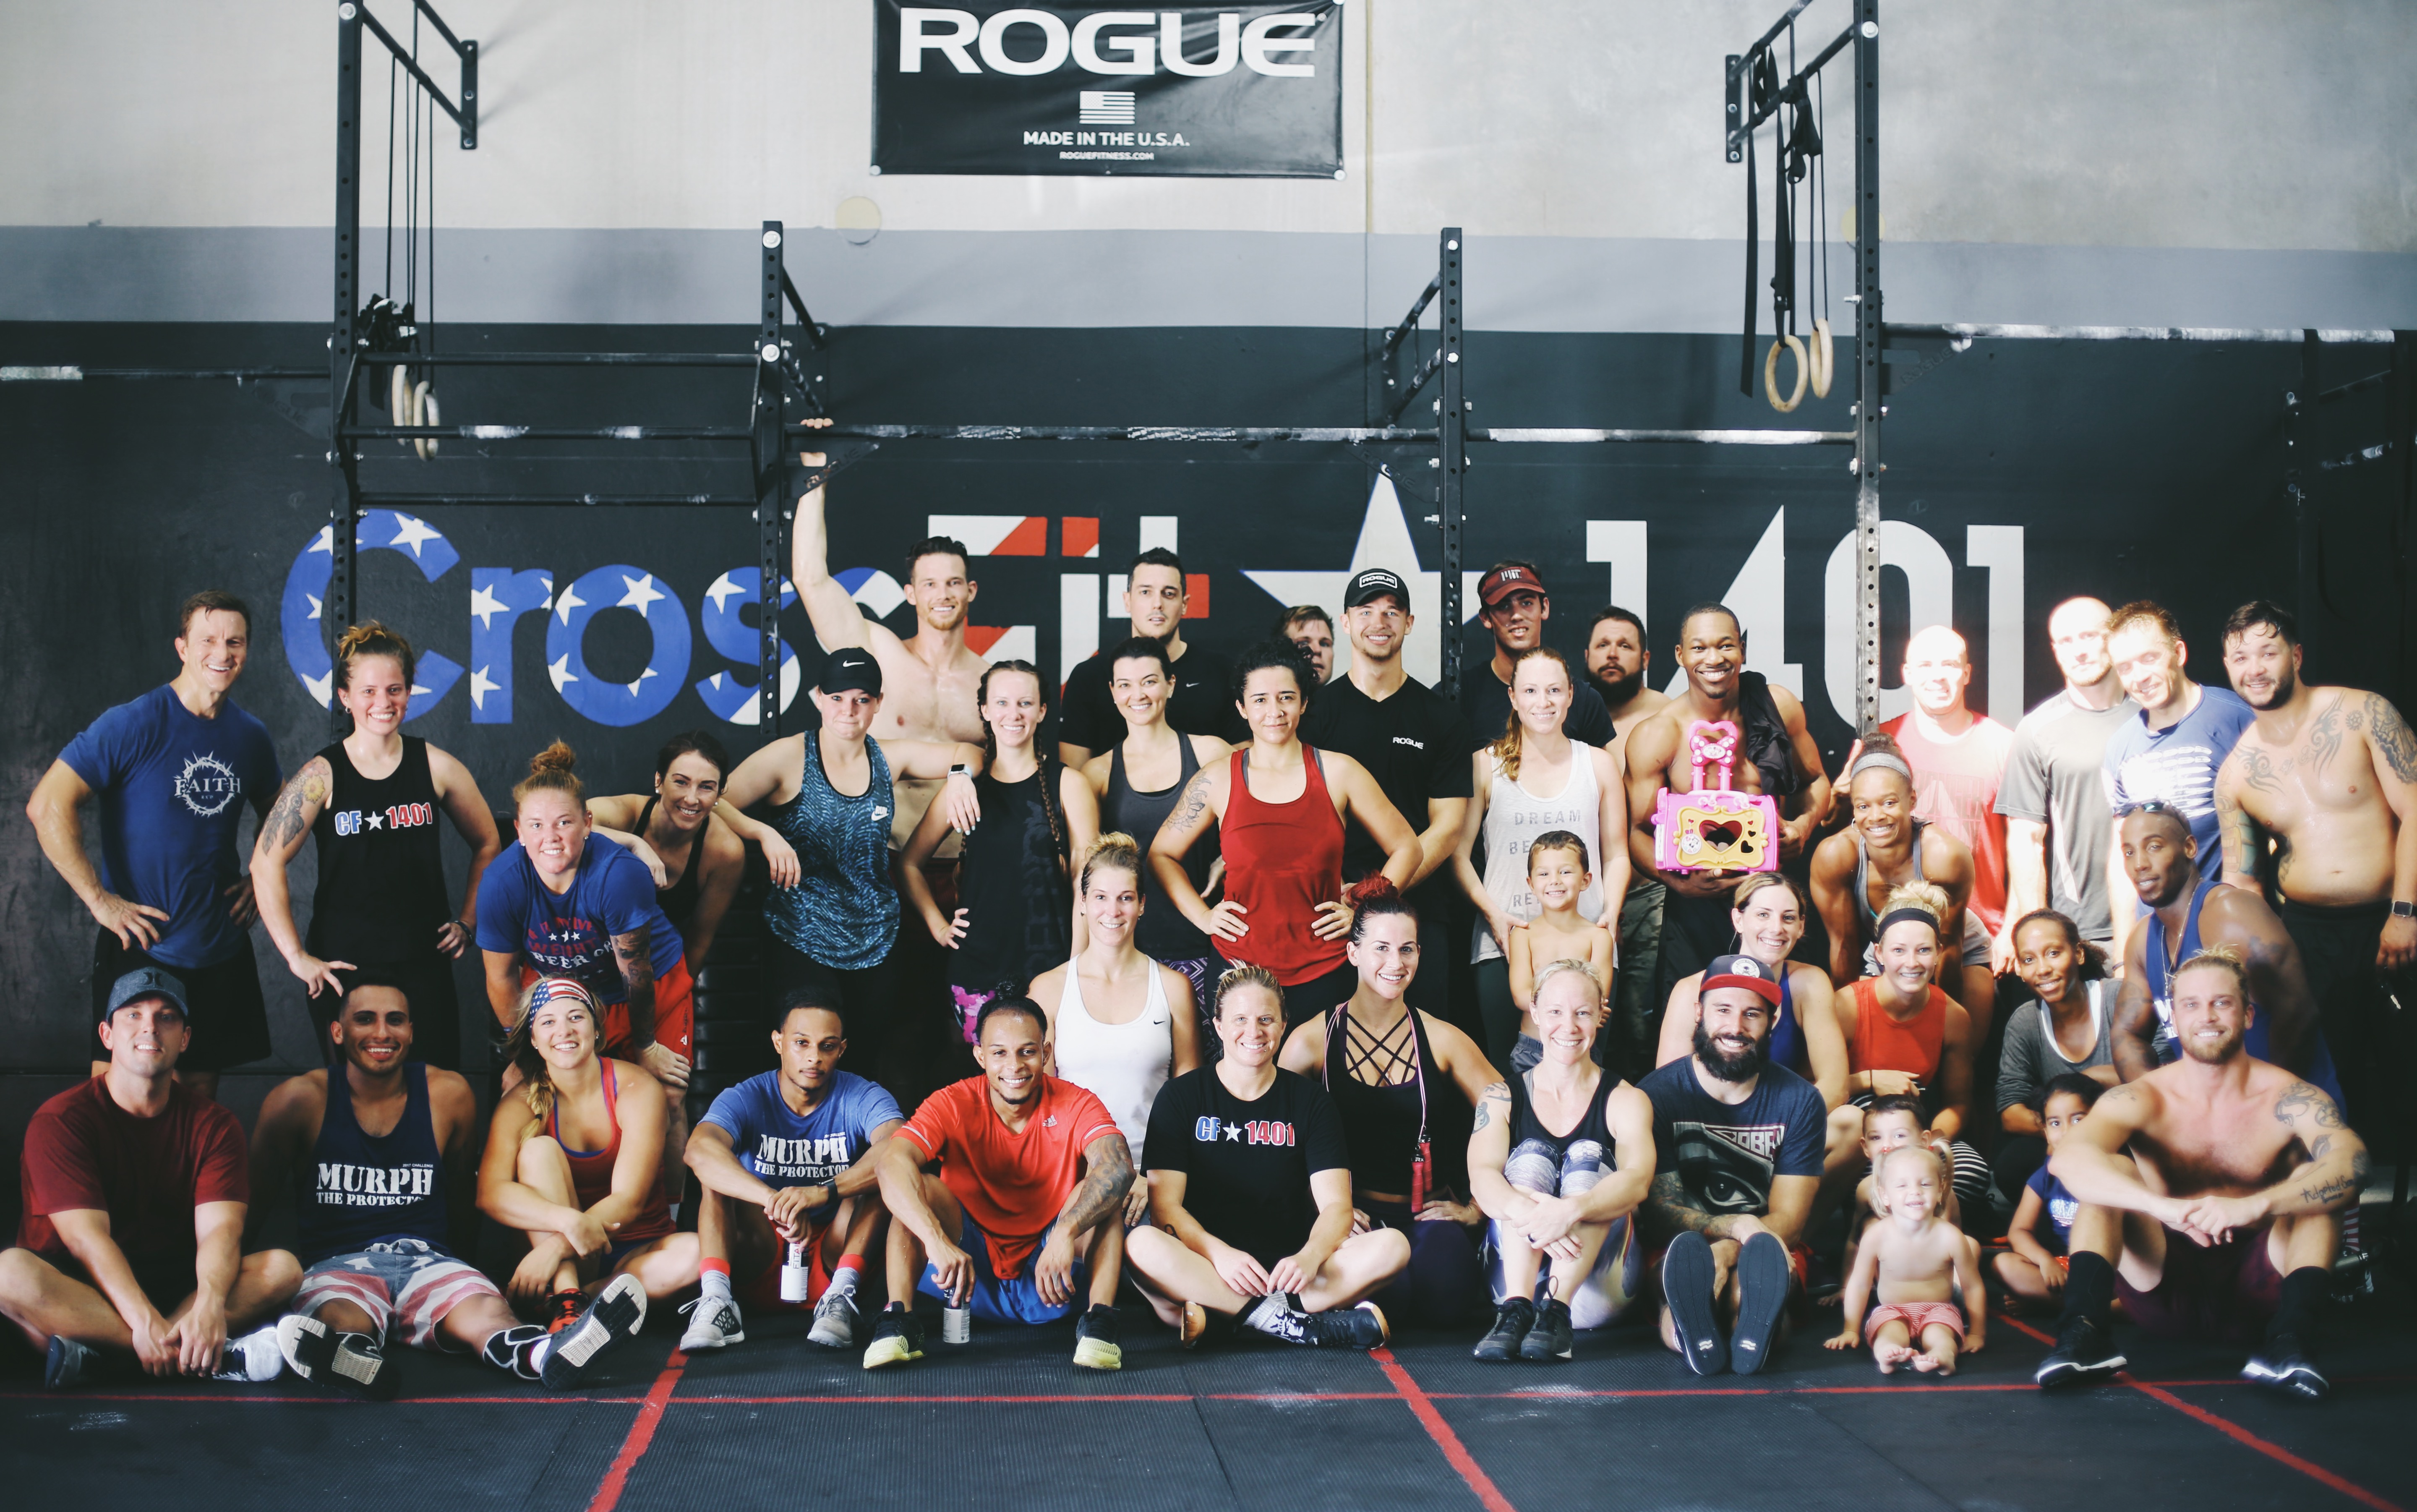 crossfit 1401 family